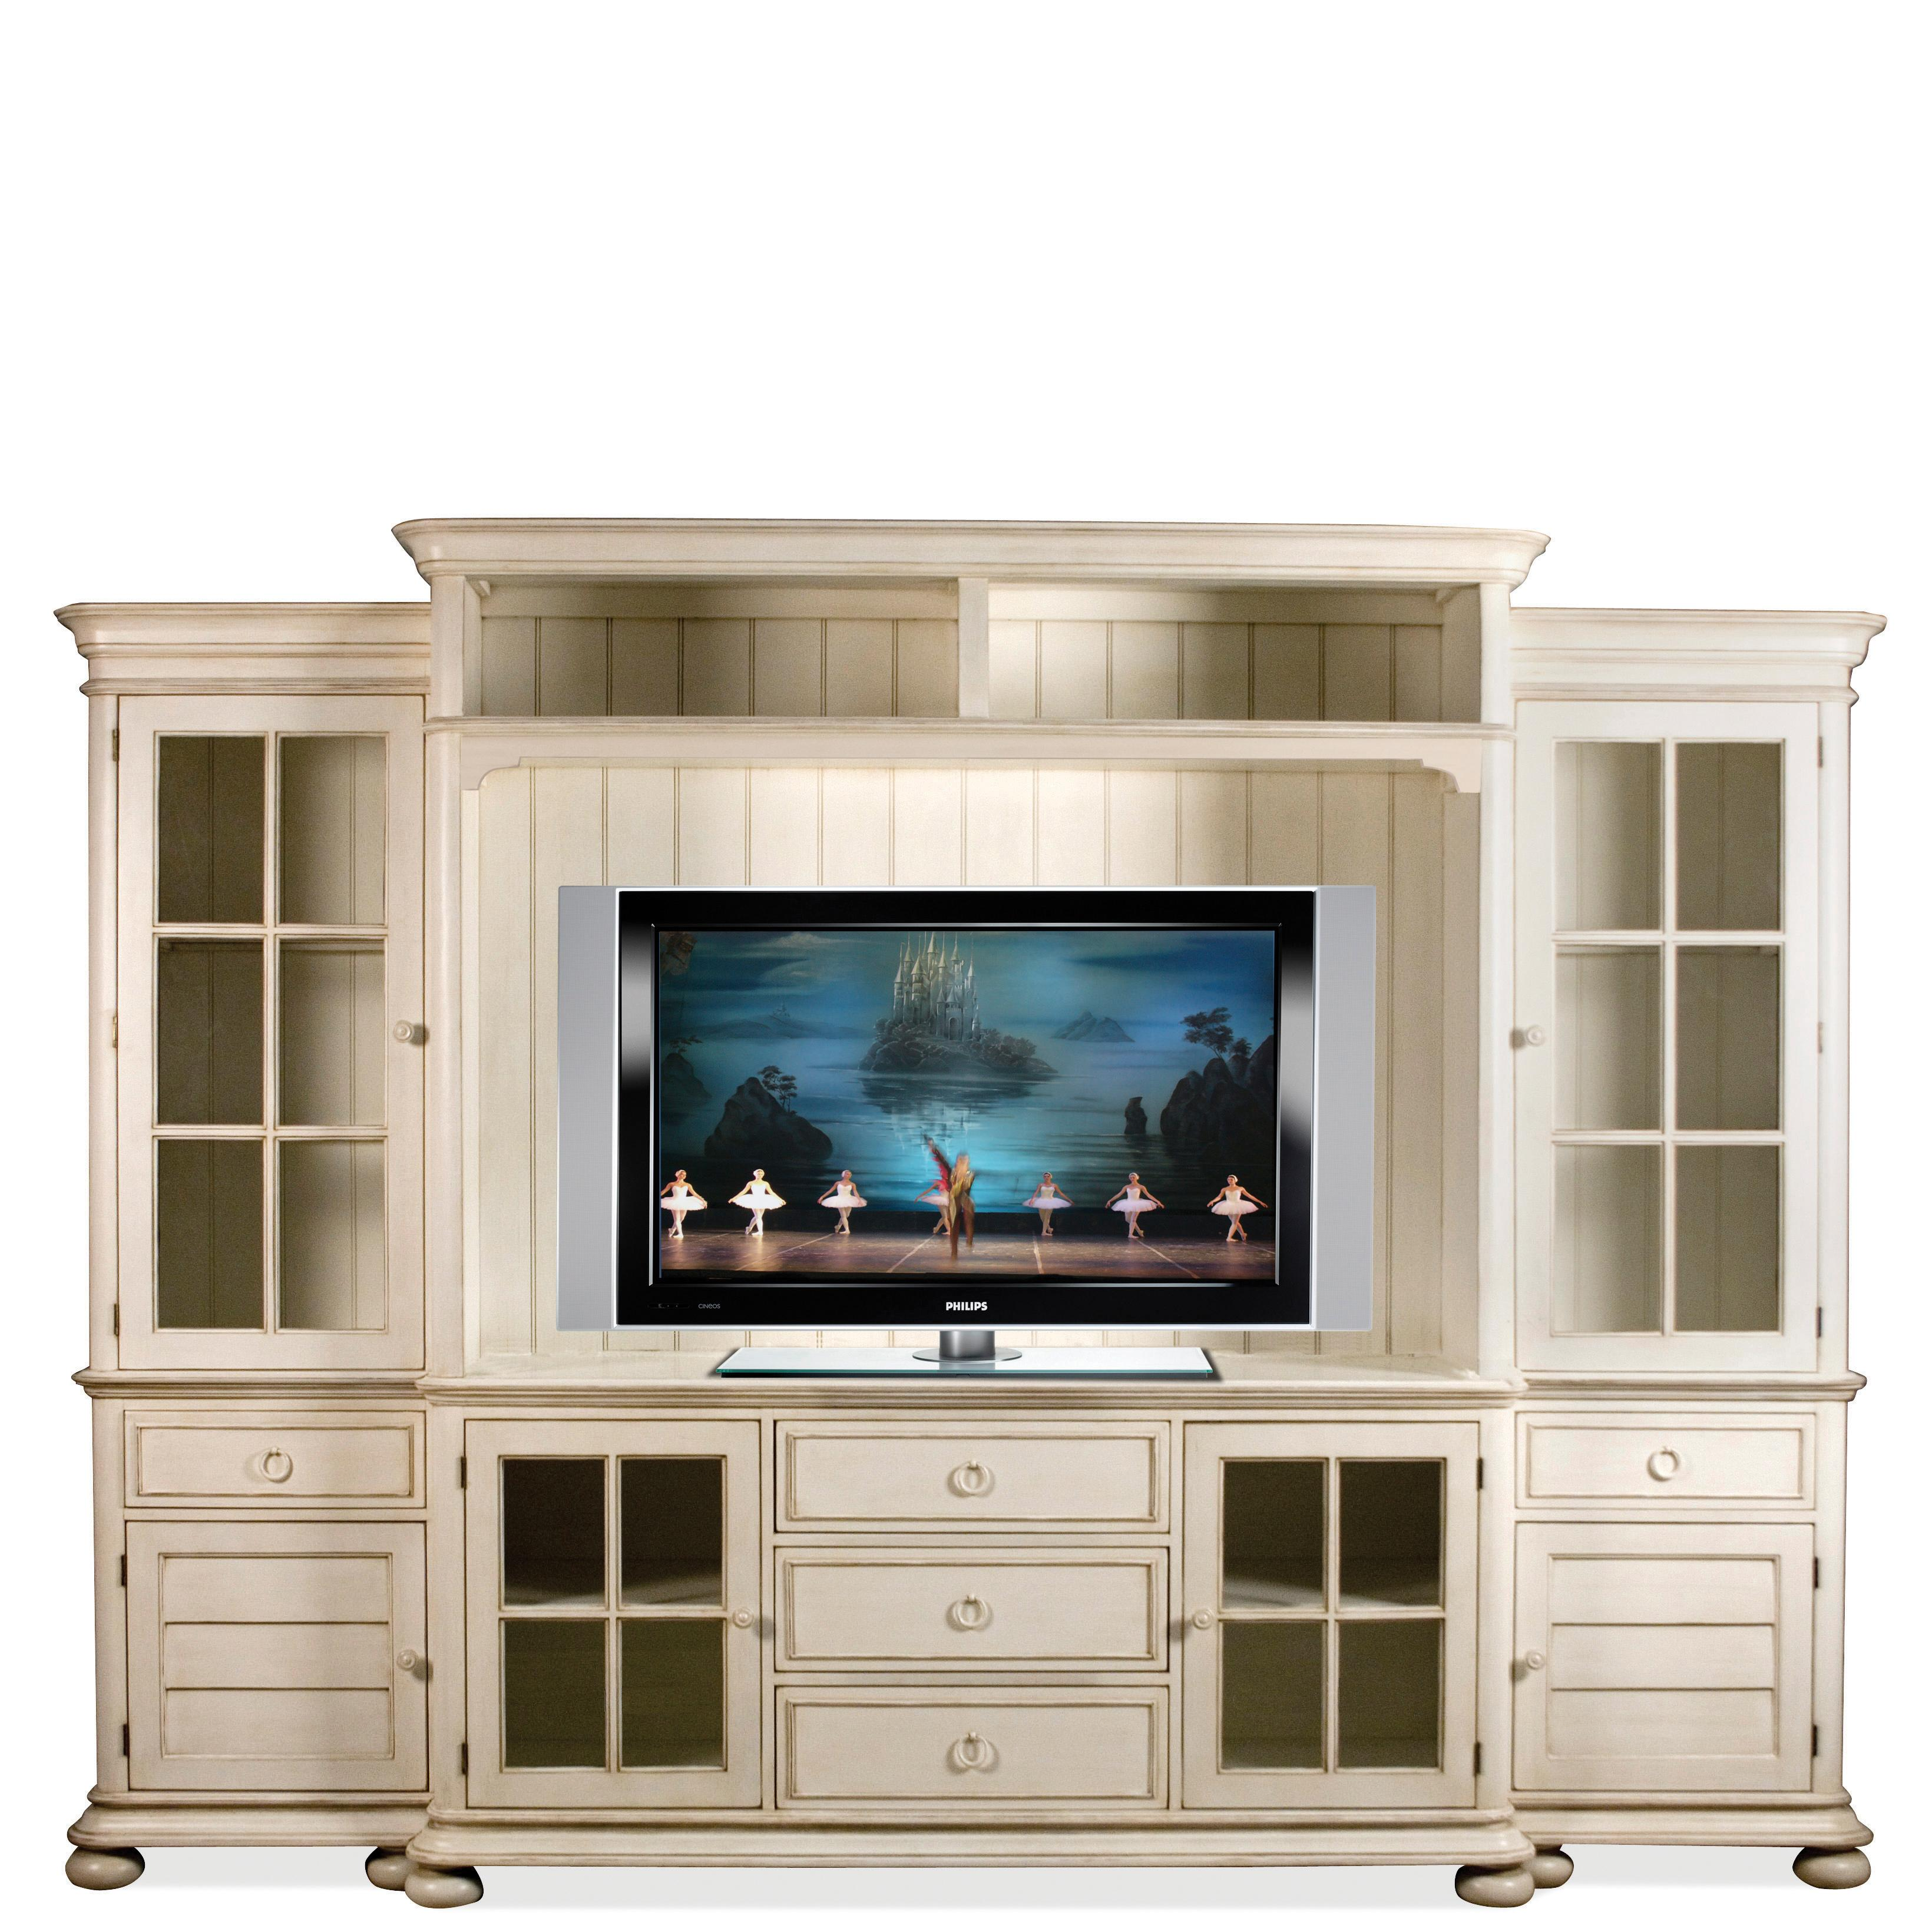 Riverside furniture placid cove entertainment wall unit How to build an entertainment wall unit